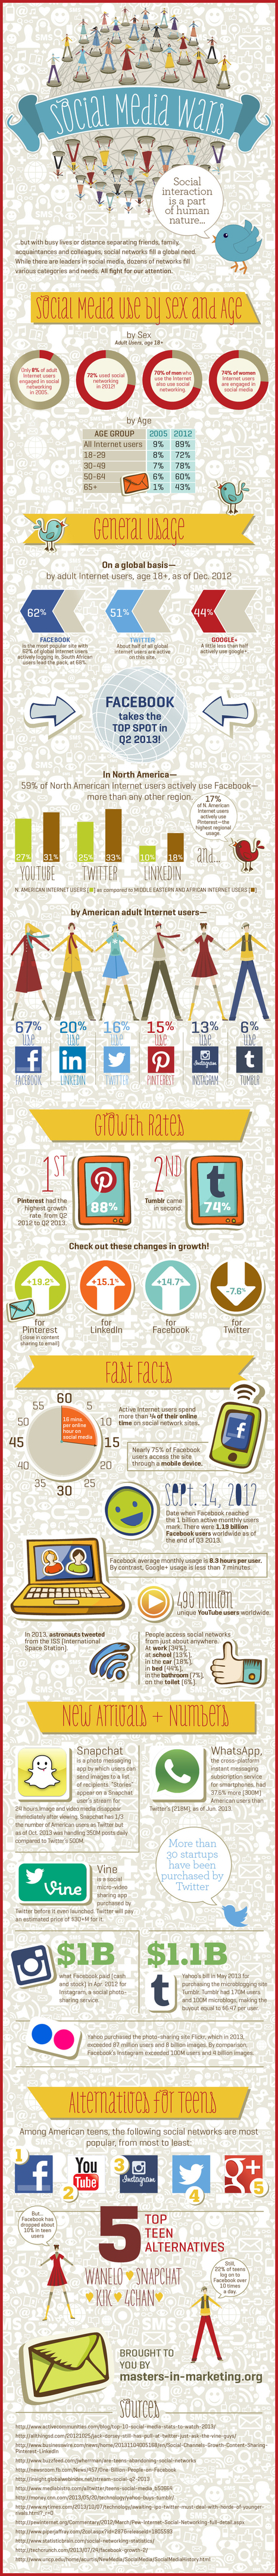 The Social Media Wars [INFOGRAPHIC] | Personal Branding and Professional networks | Scoop.it